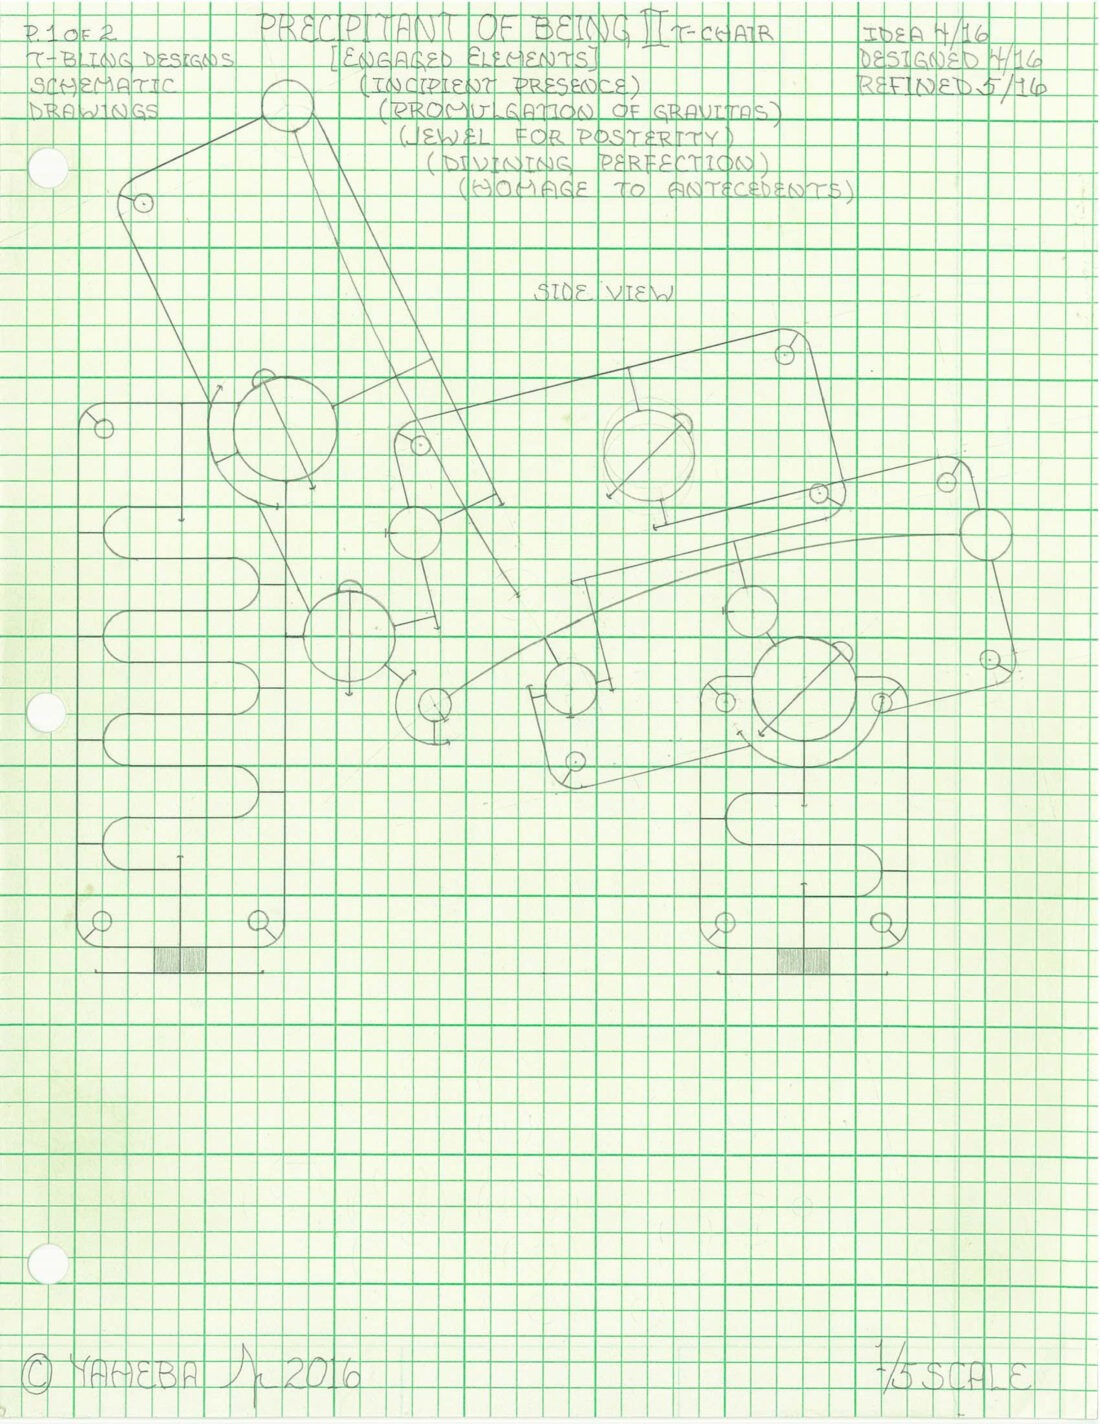 precipitant-of-being-ii-t-bling-chair-schematic-00